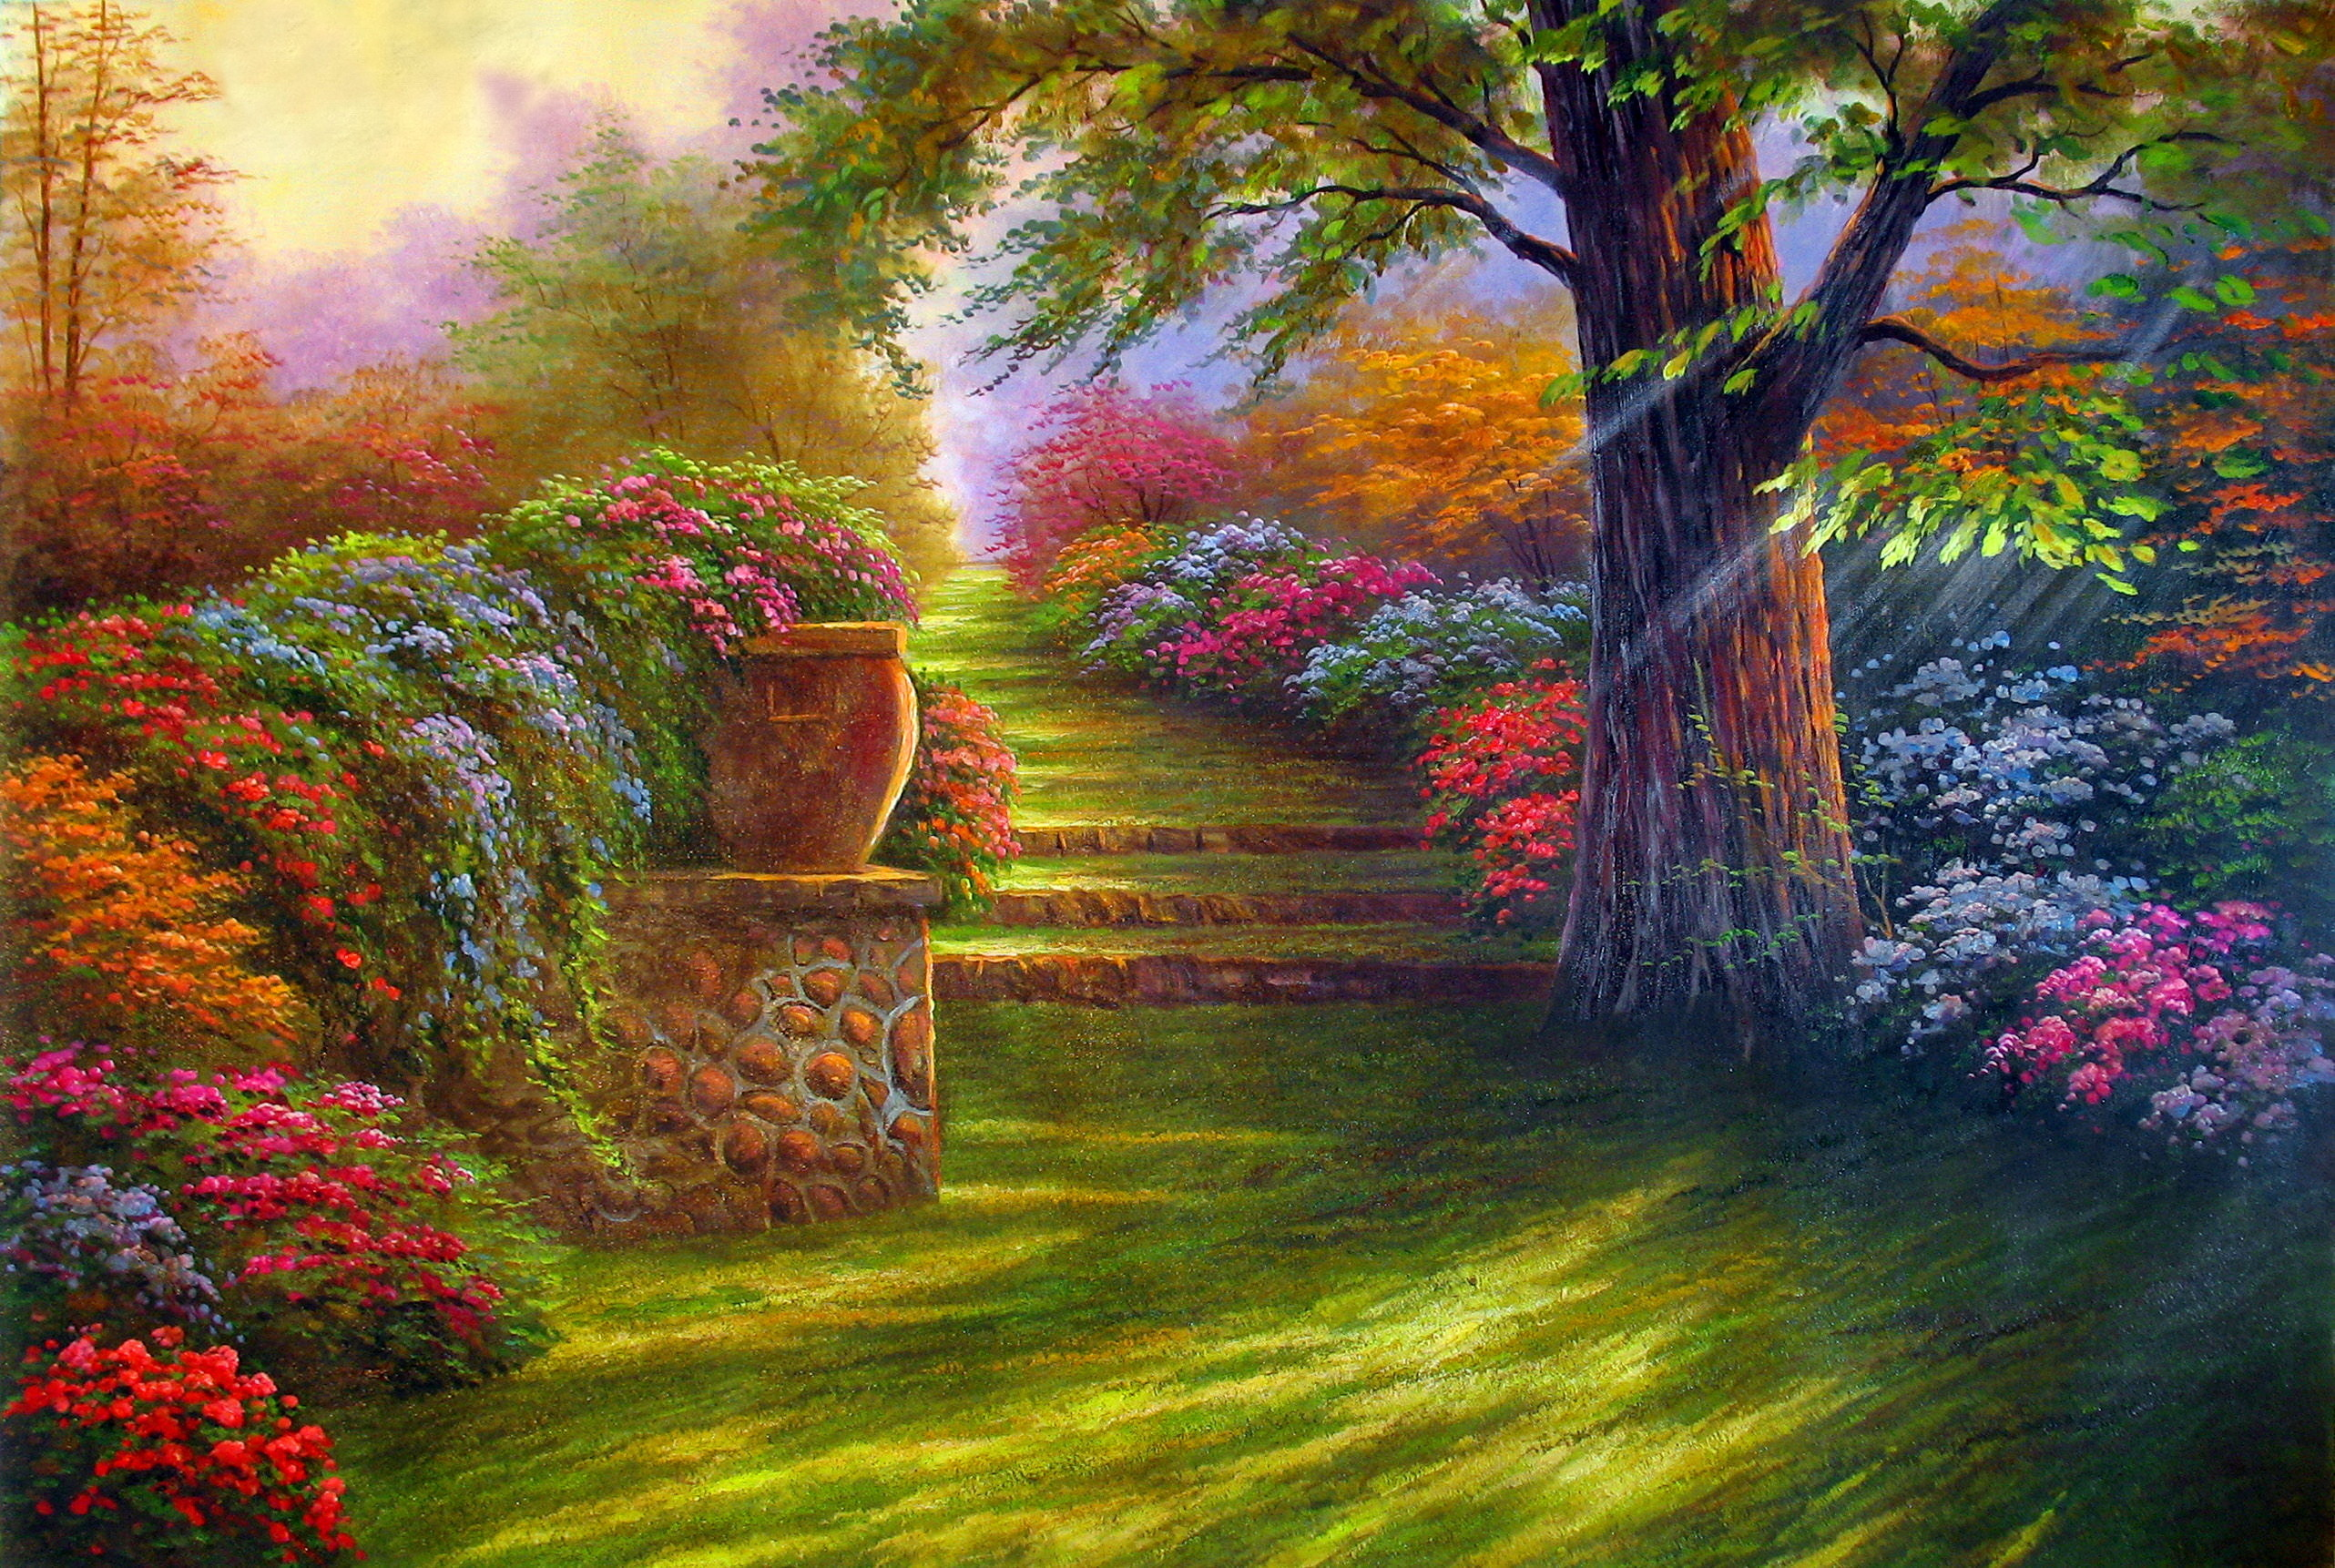 Painting garden road flowers wallpaper 2564x1722 for Garden painting images